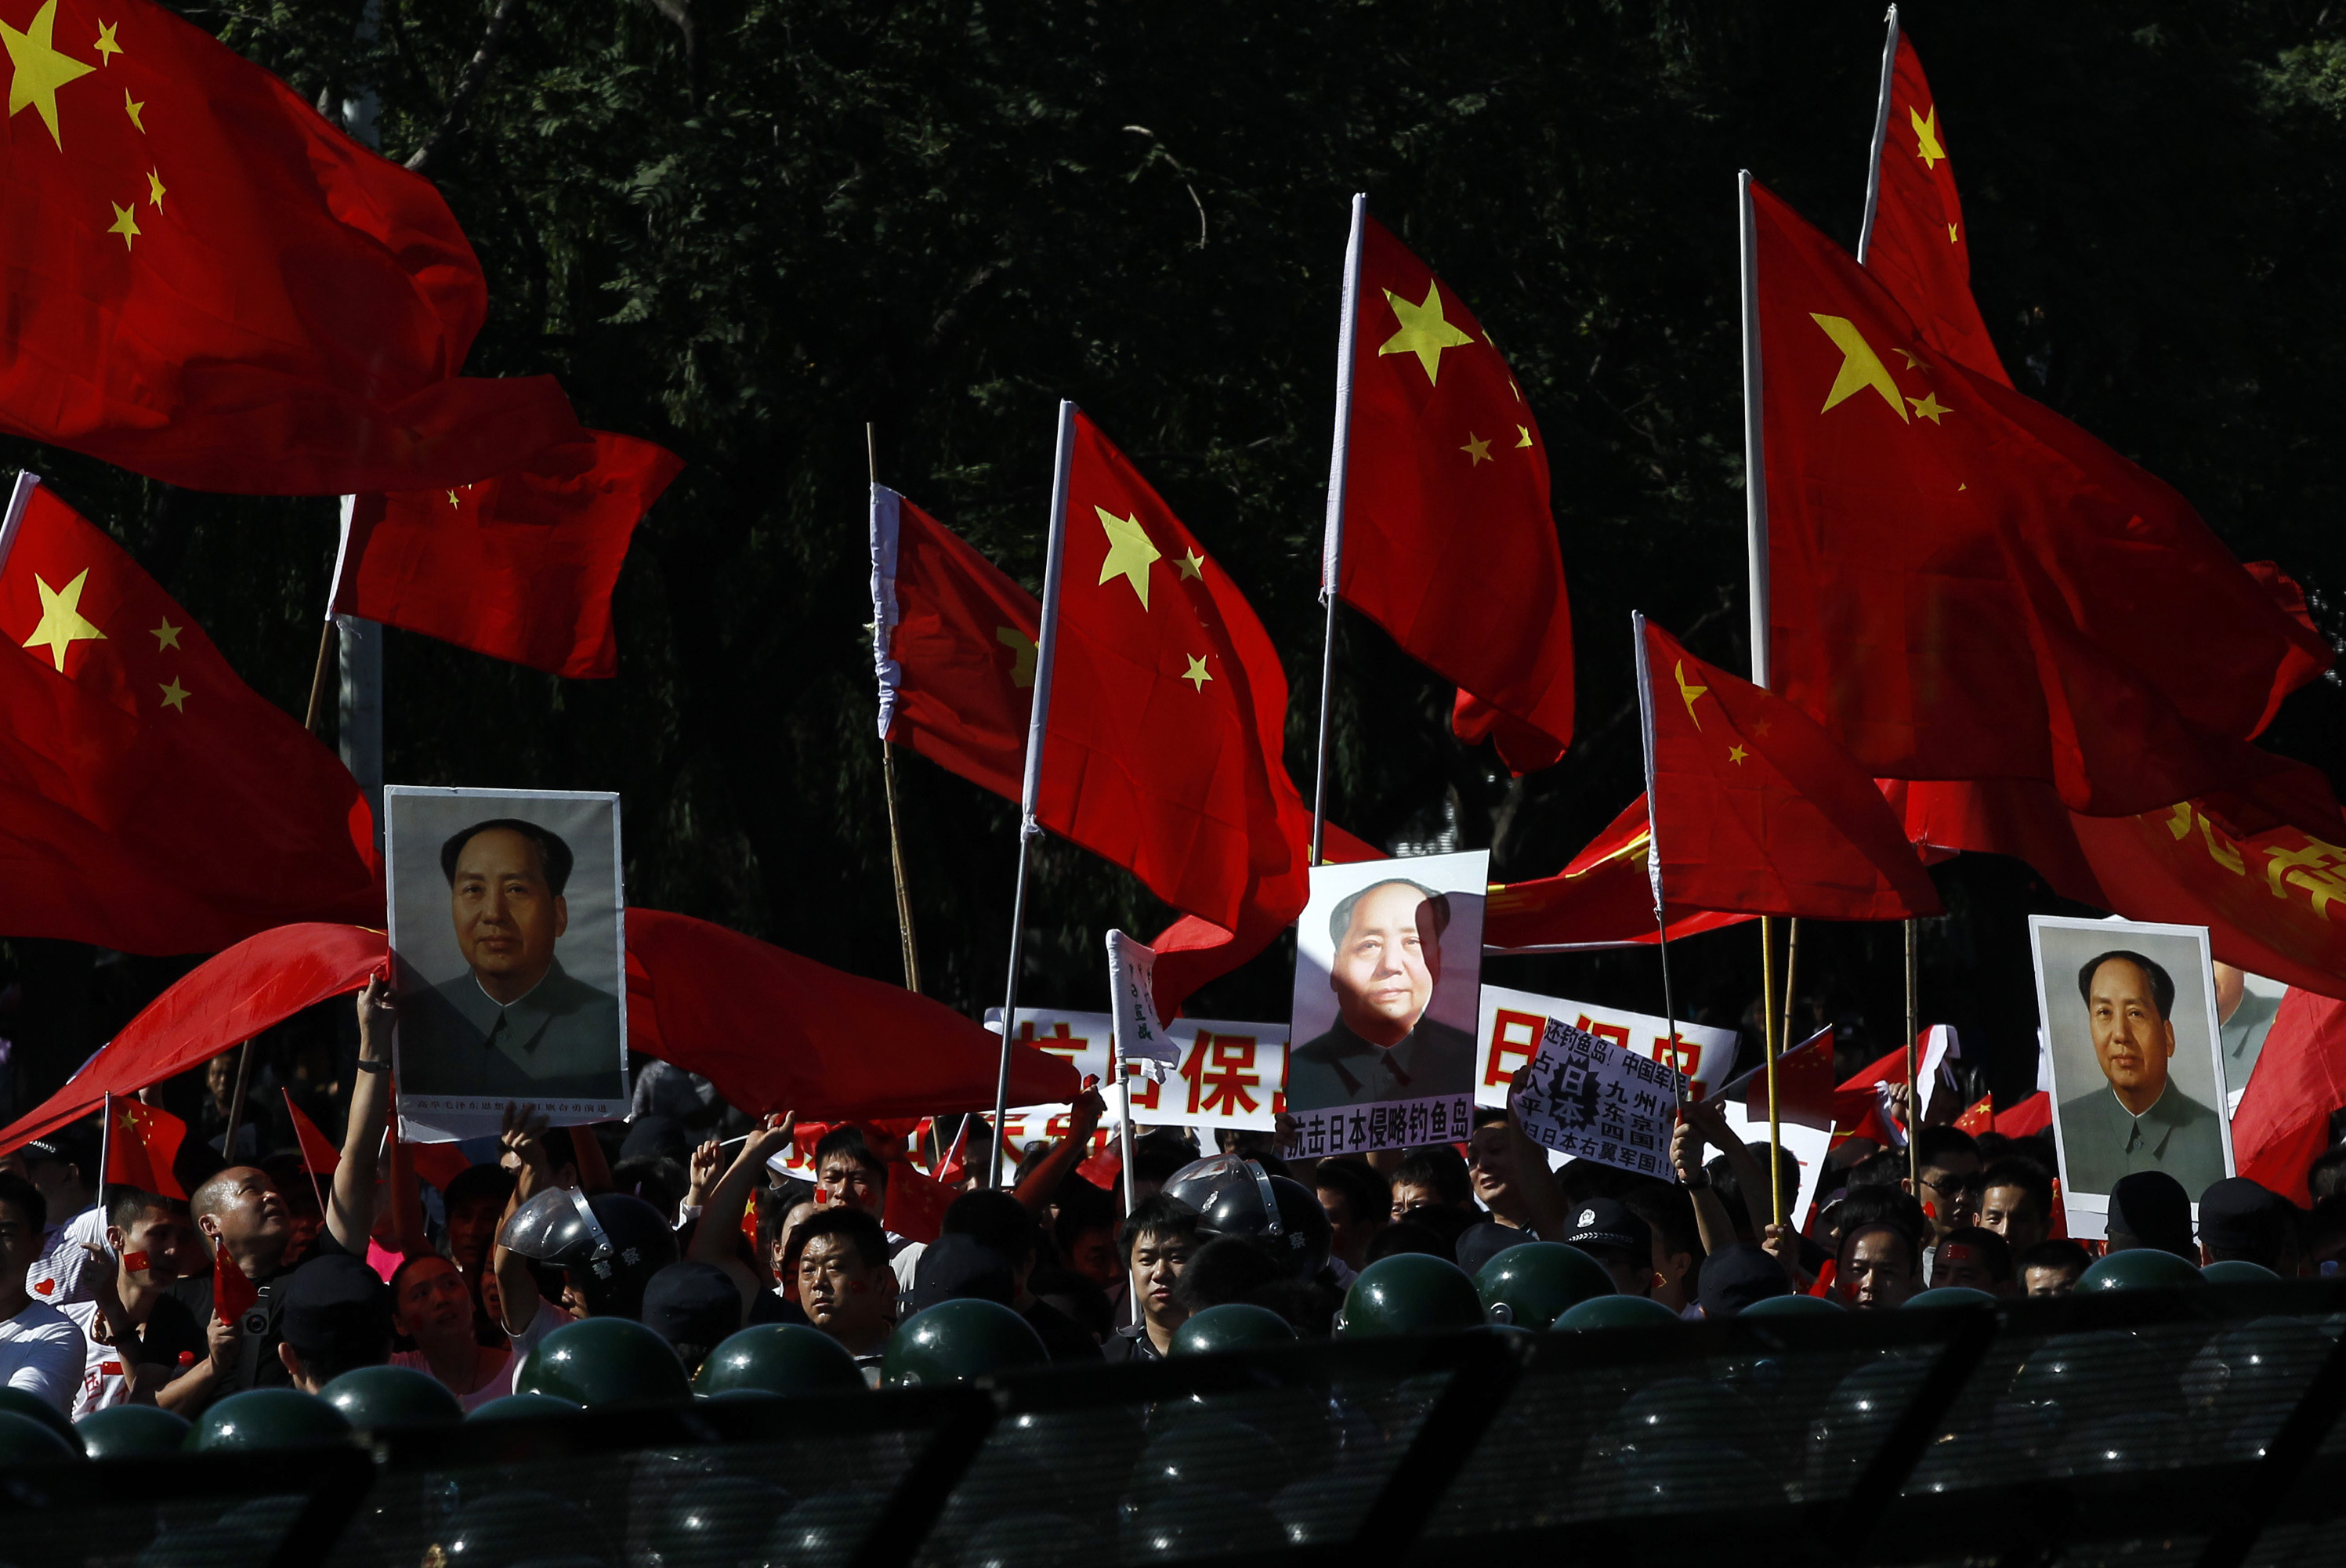 For Many Of China's Youth, June 4 May As Well Be Just Another Day